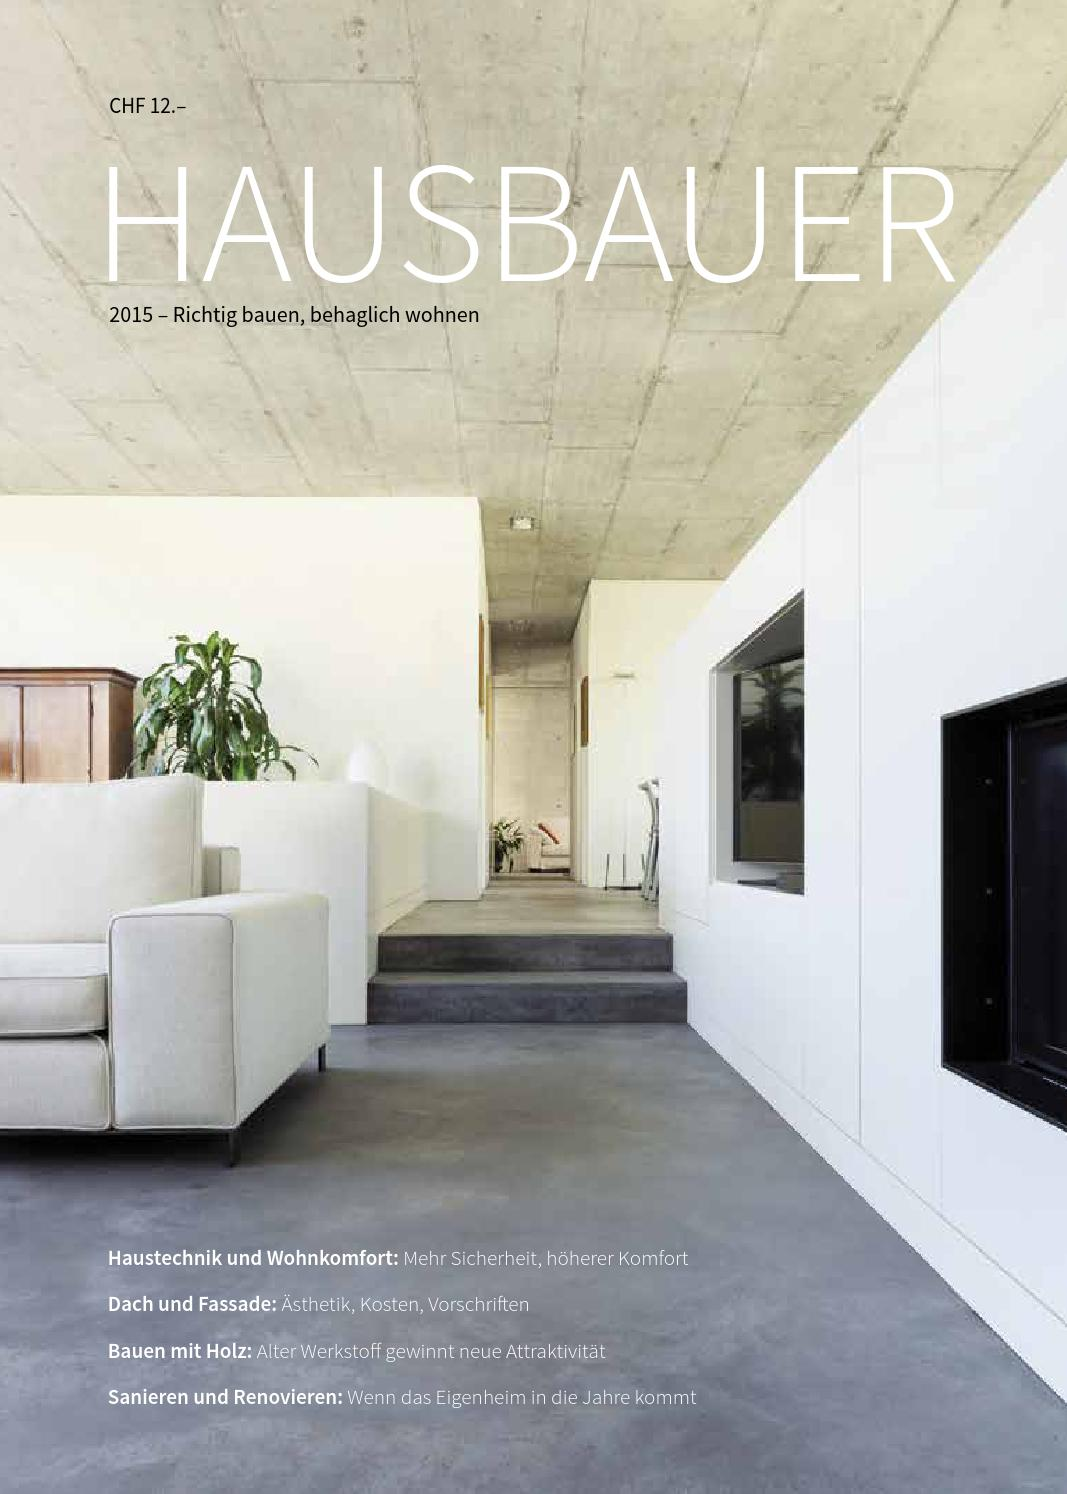 Hausbauer 2015 by metrocomm ag   issuu